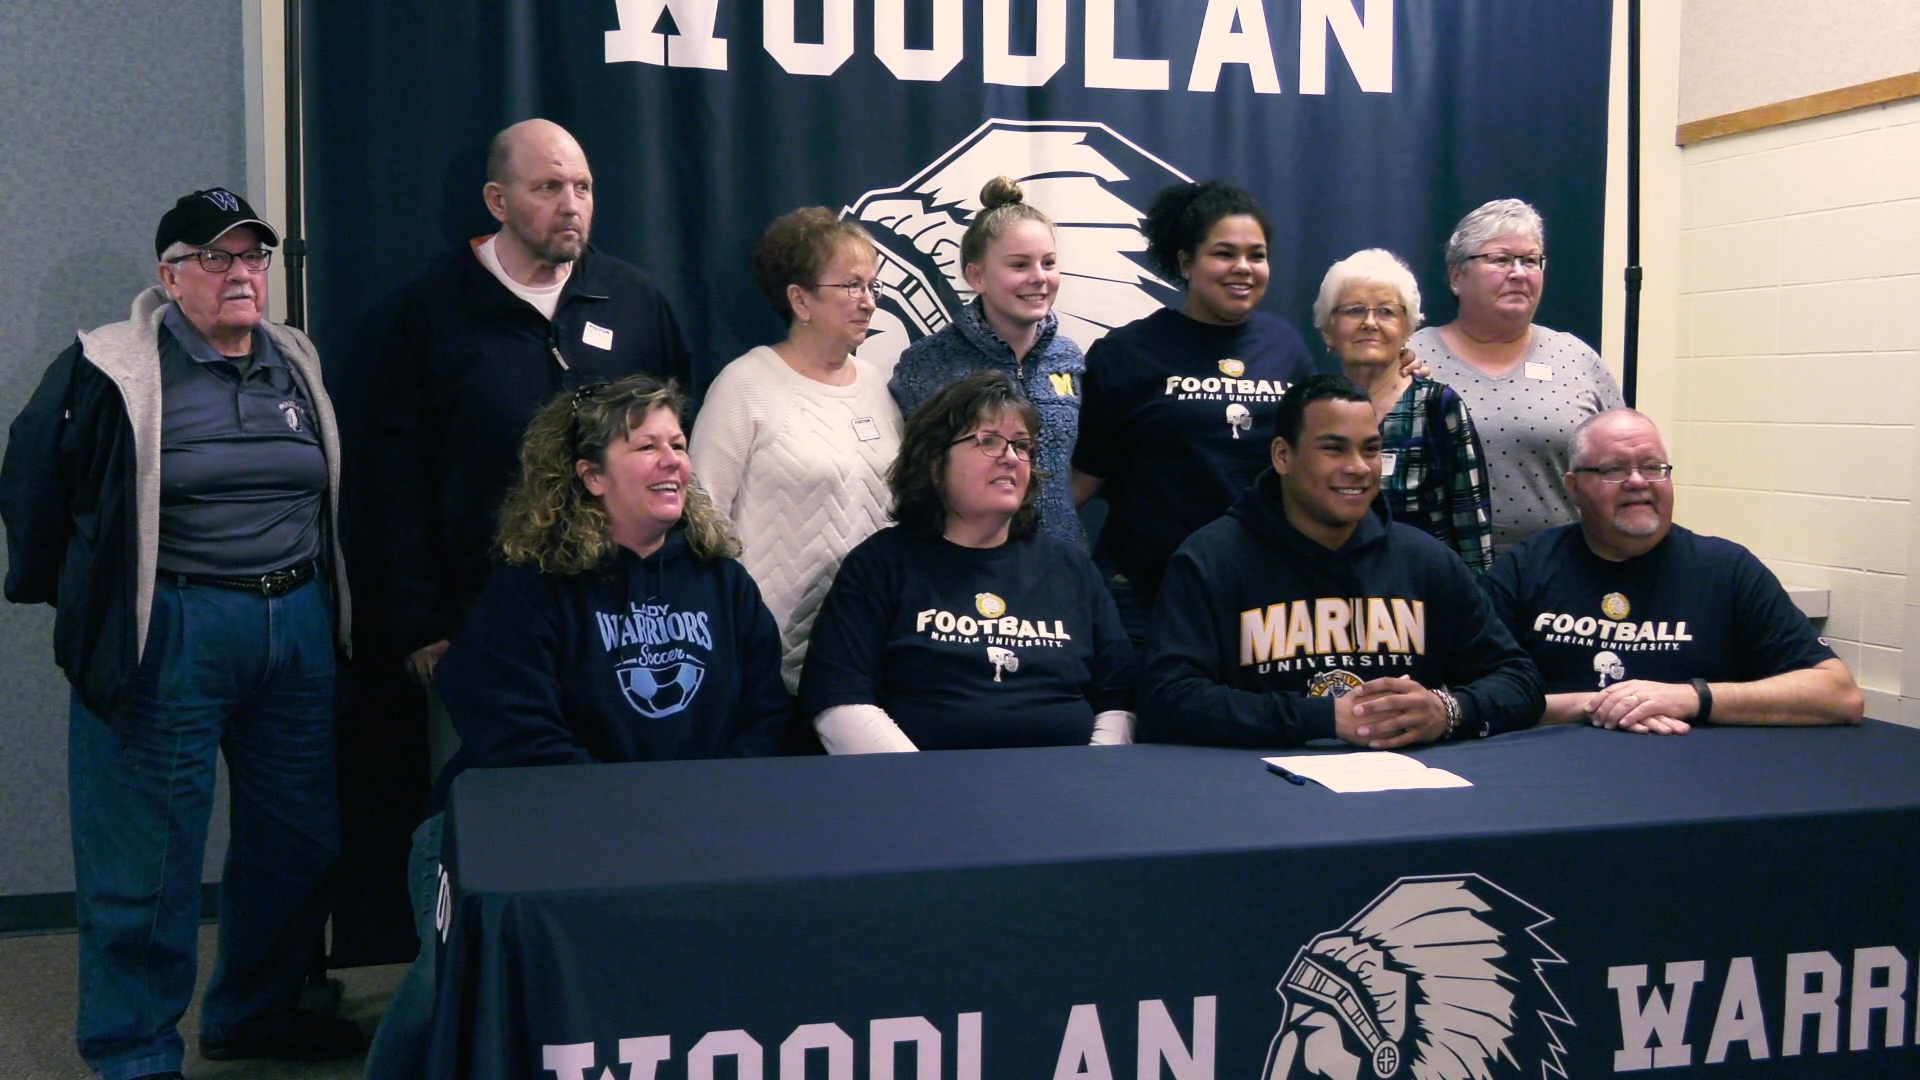 Woodlan's Meyer makes football plans with Marian